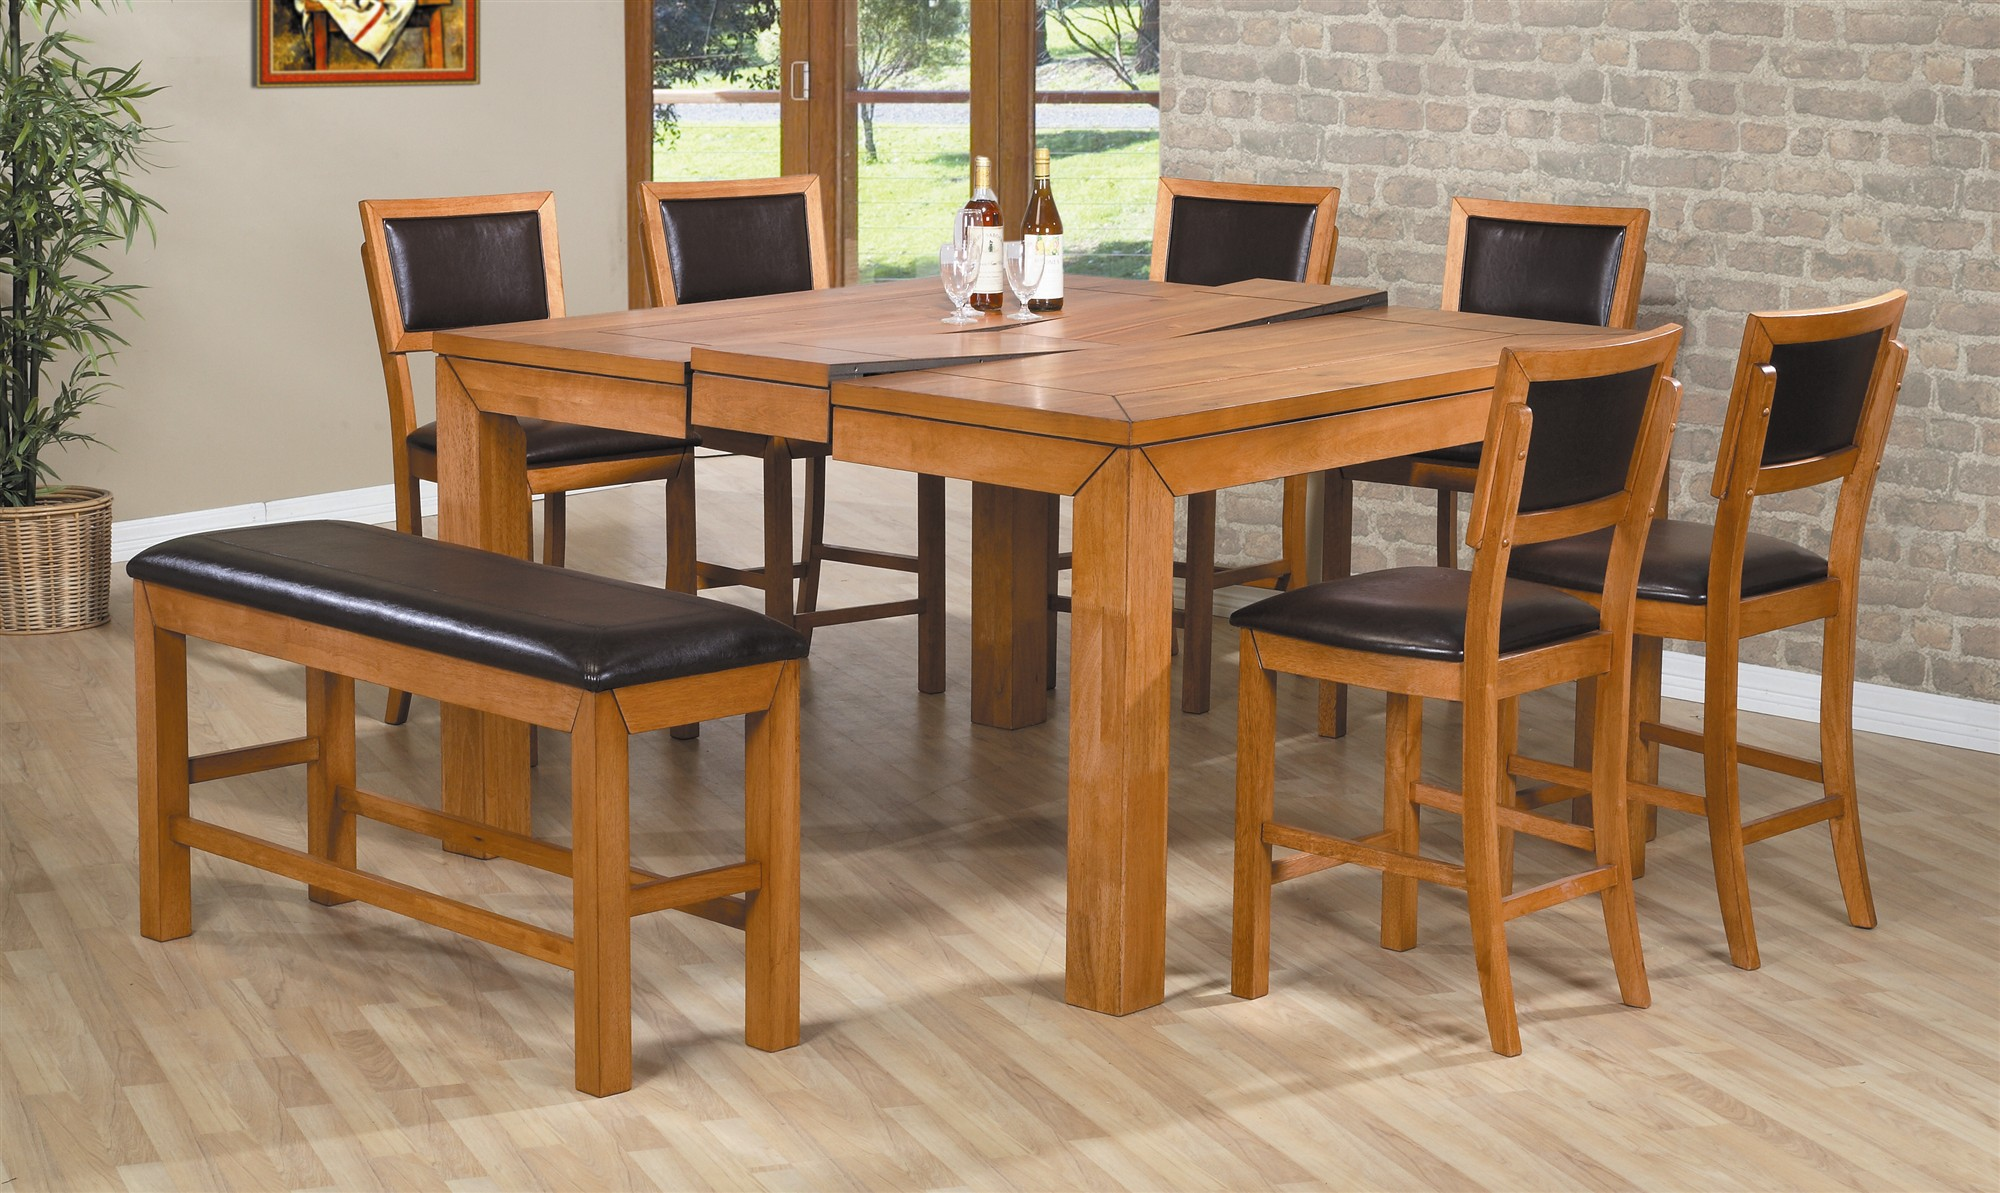 Large Dining Room Tables Seat 12 Dining Room Table Seats 12 For Big Family Homesfeed